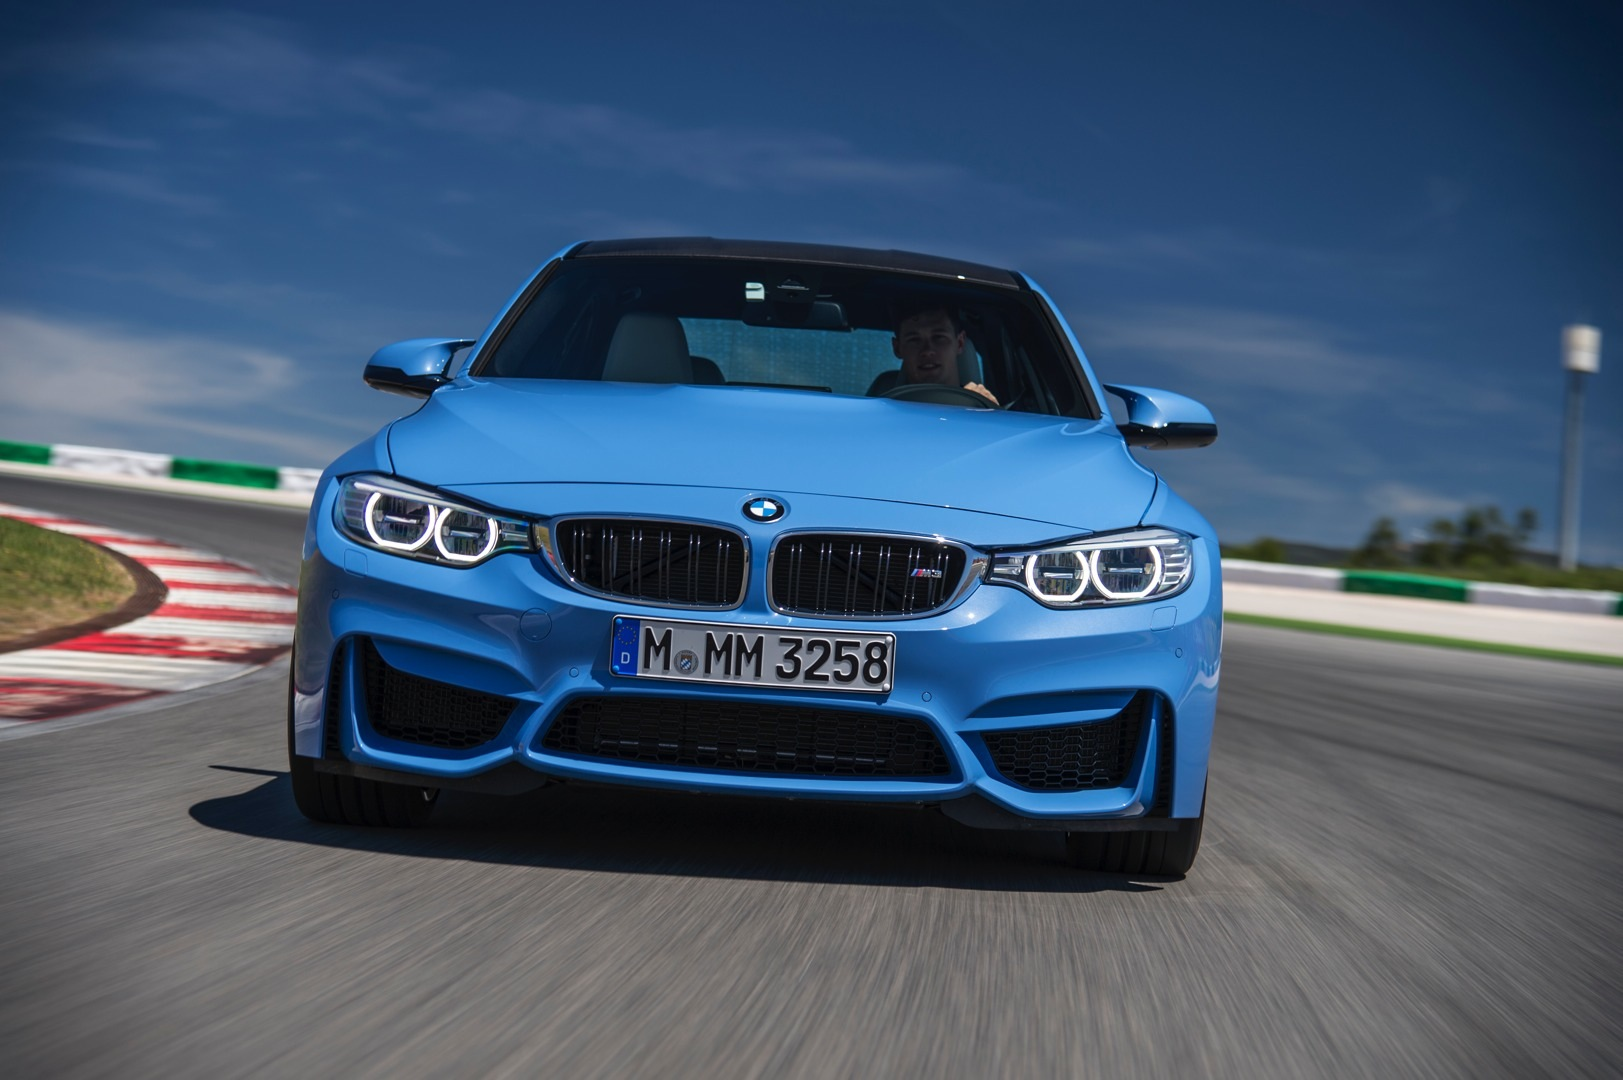 New BMW M3 and M4 HD Wallpapers Are Here - autoevolution